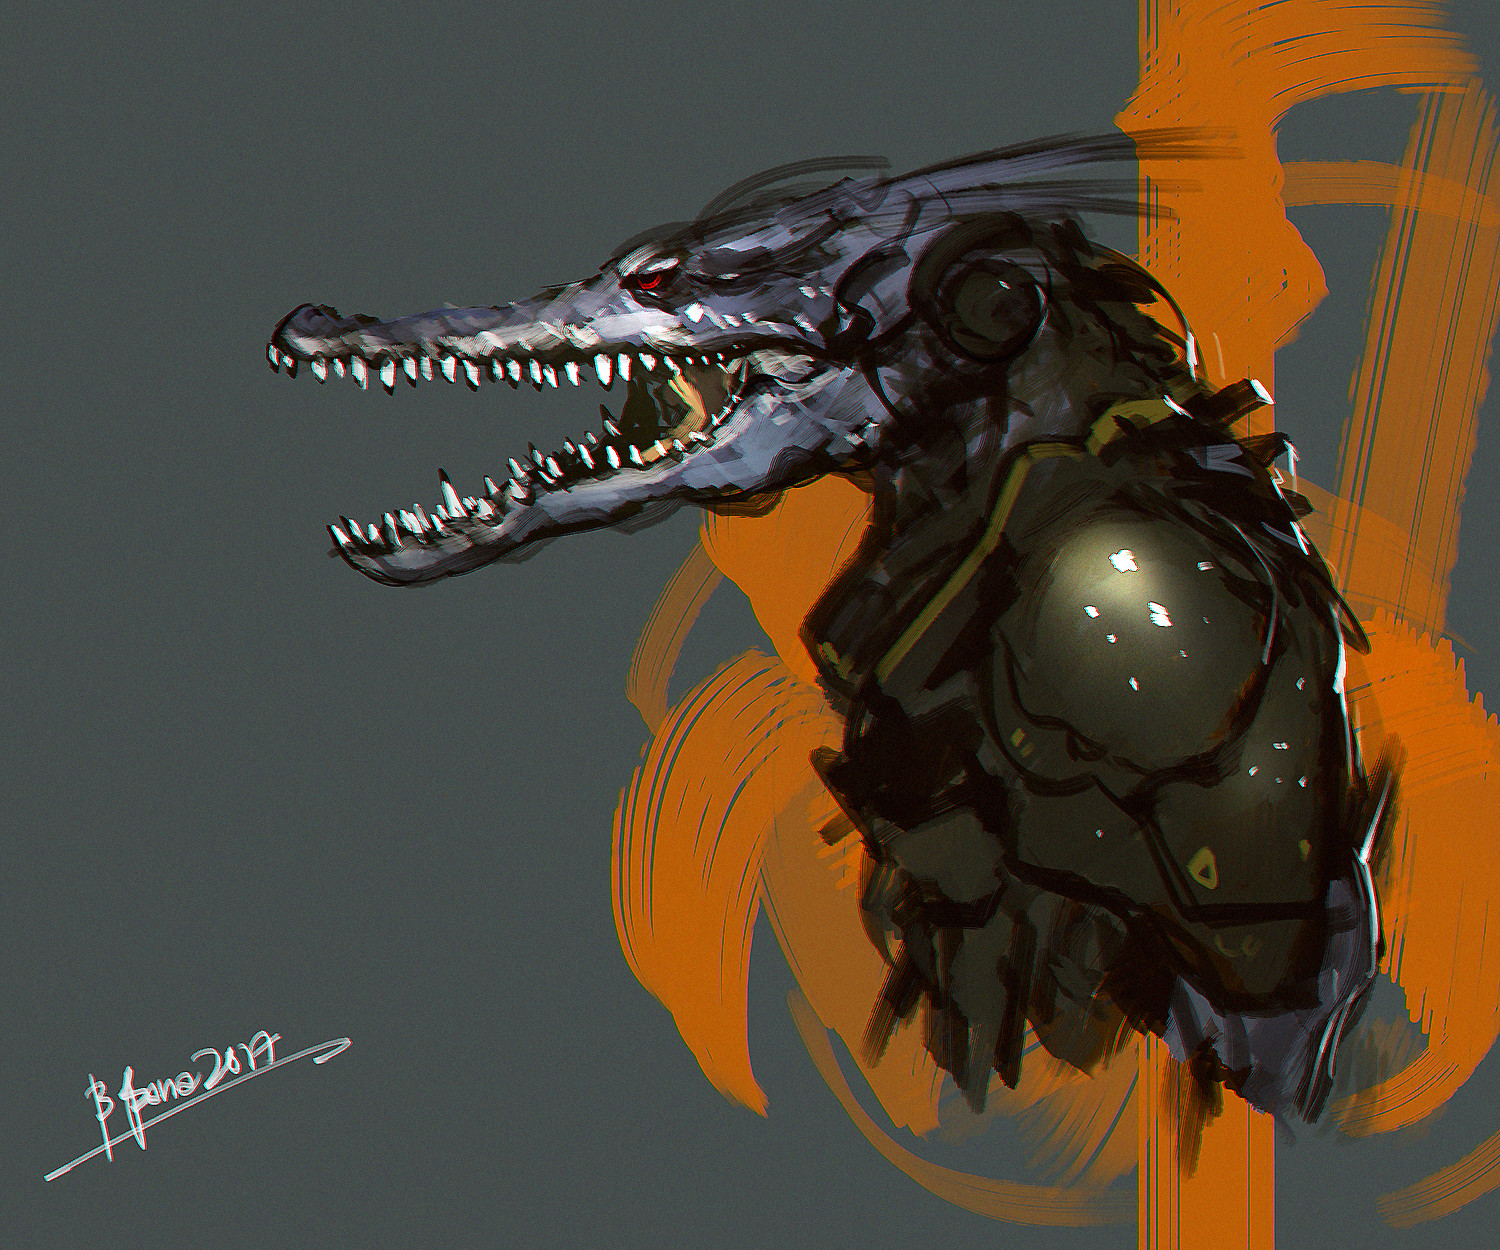 Benedick bana alligator loress